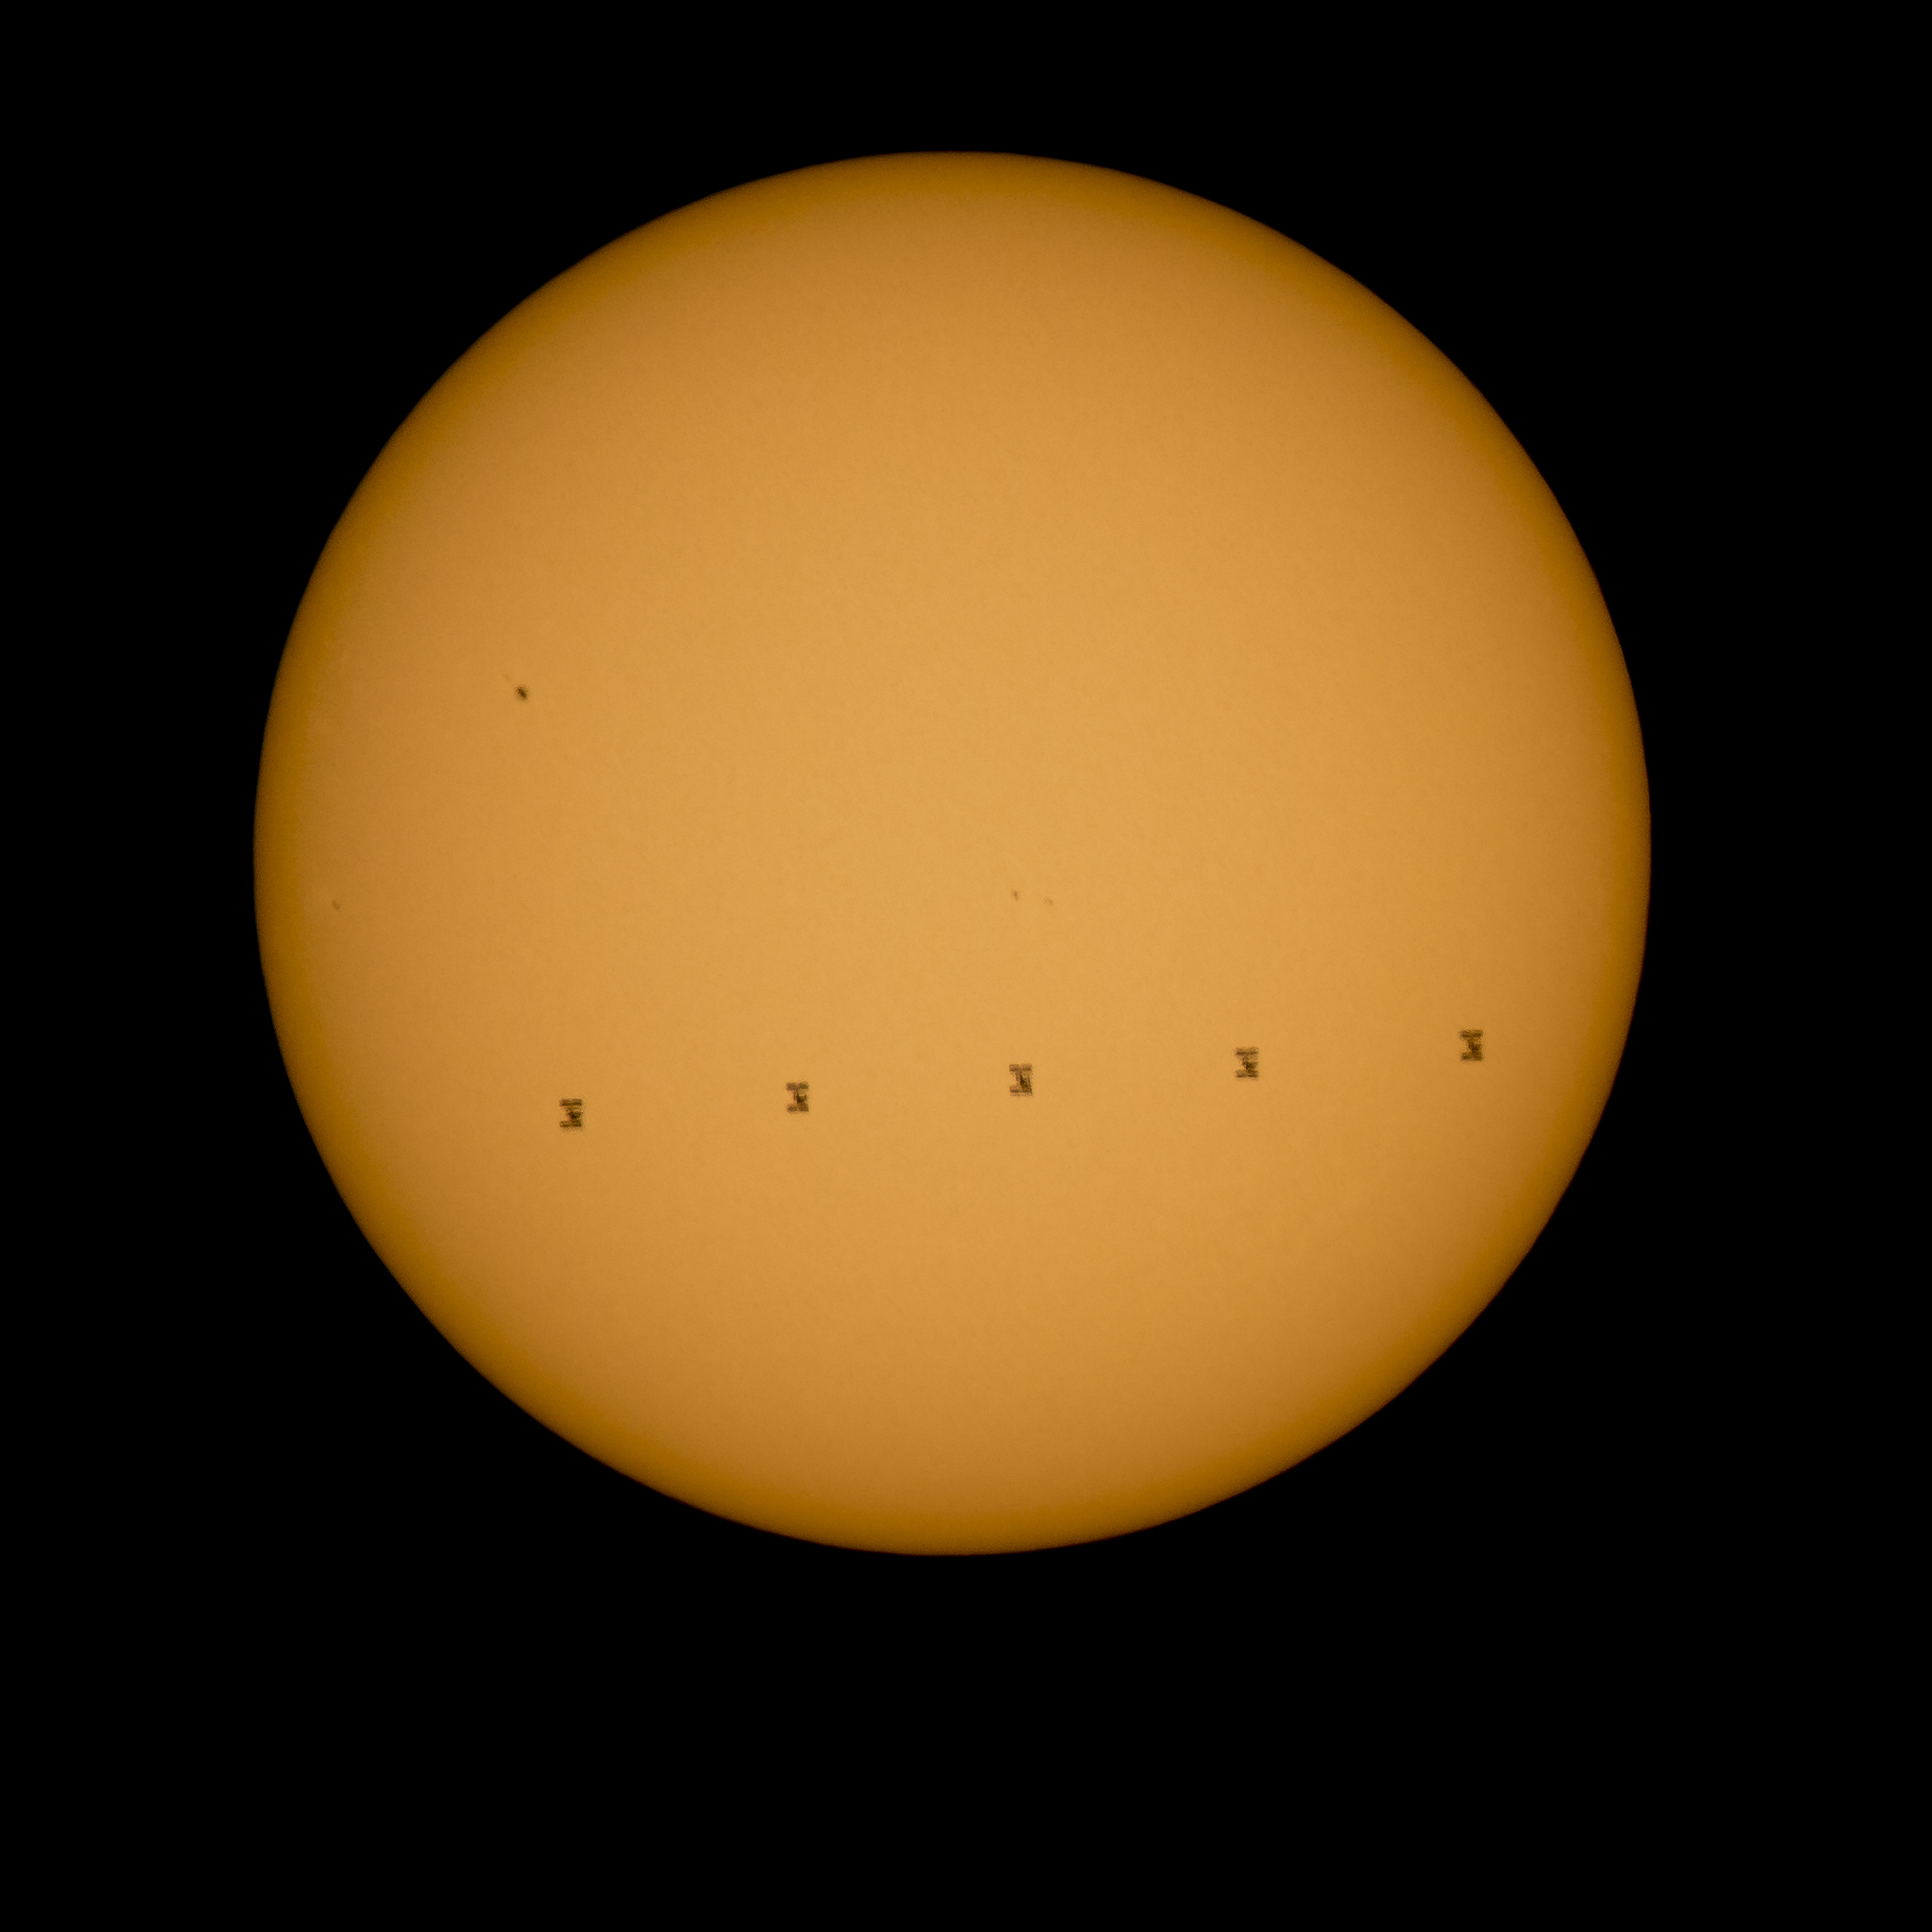 A 5-frame composite image showing the ISS transiting the Sun on 2015-09-06